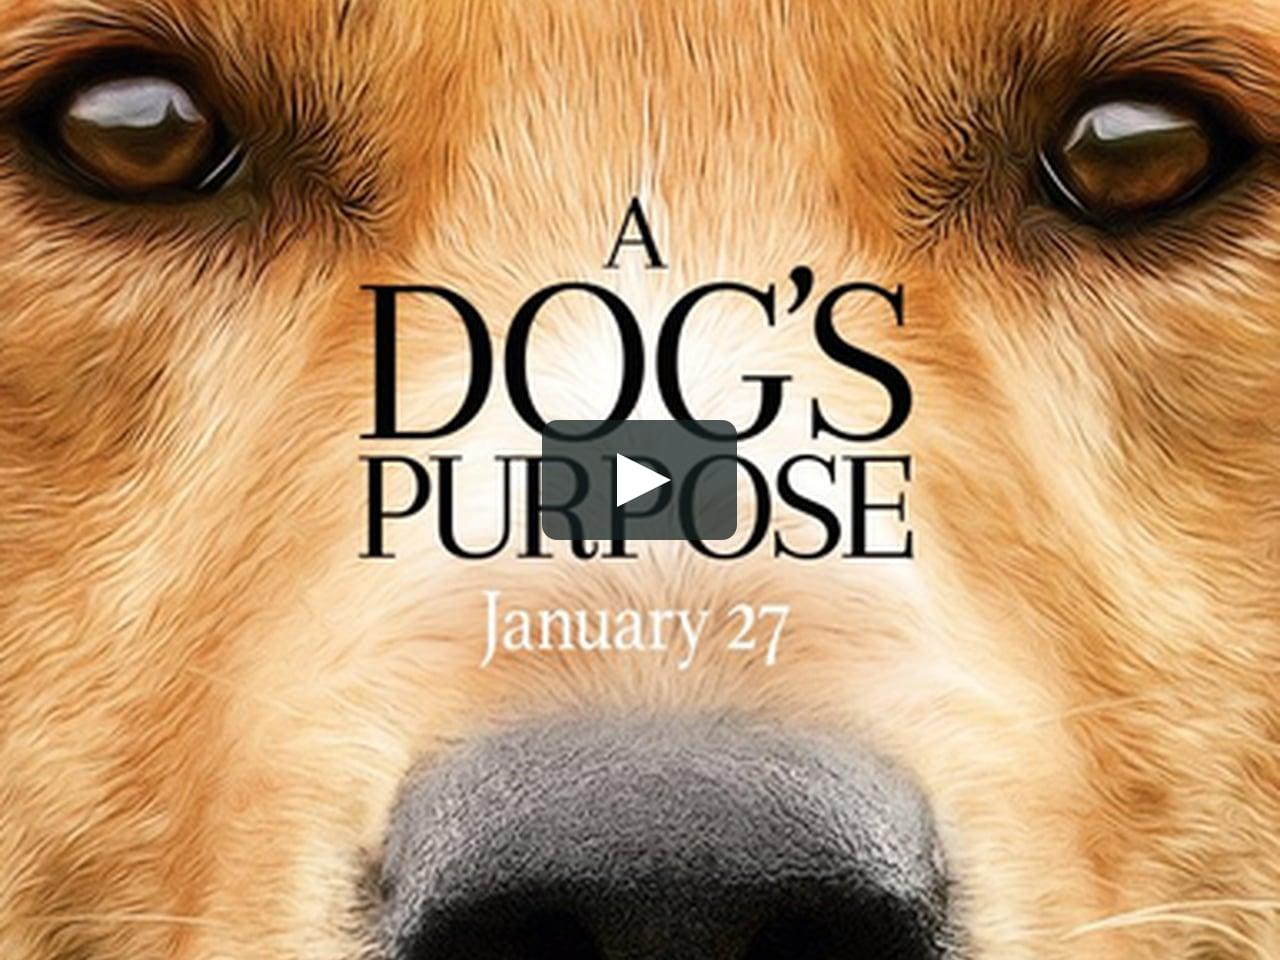 A Dog's Purpose came out on January 27, 2017.